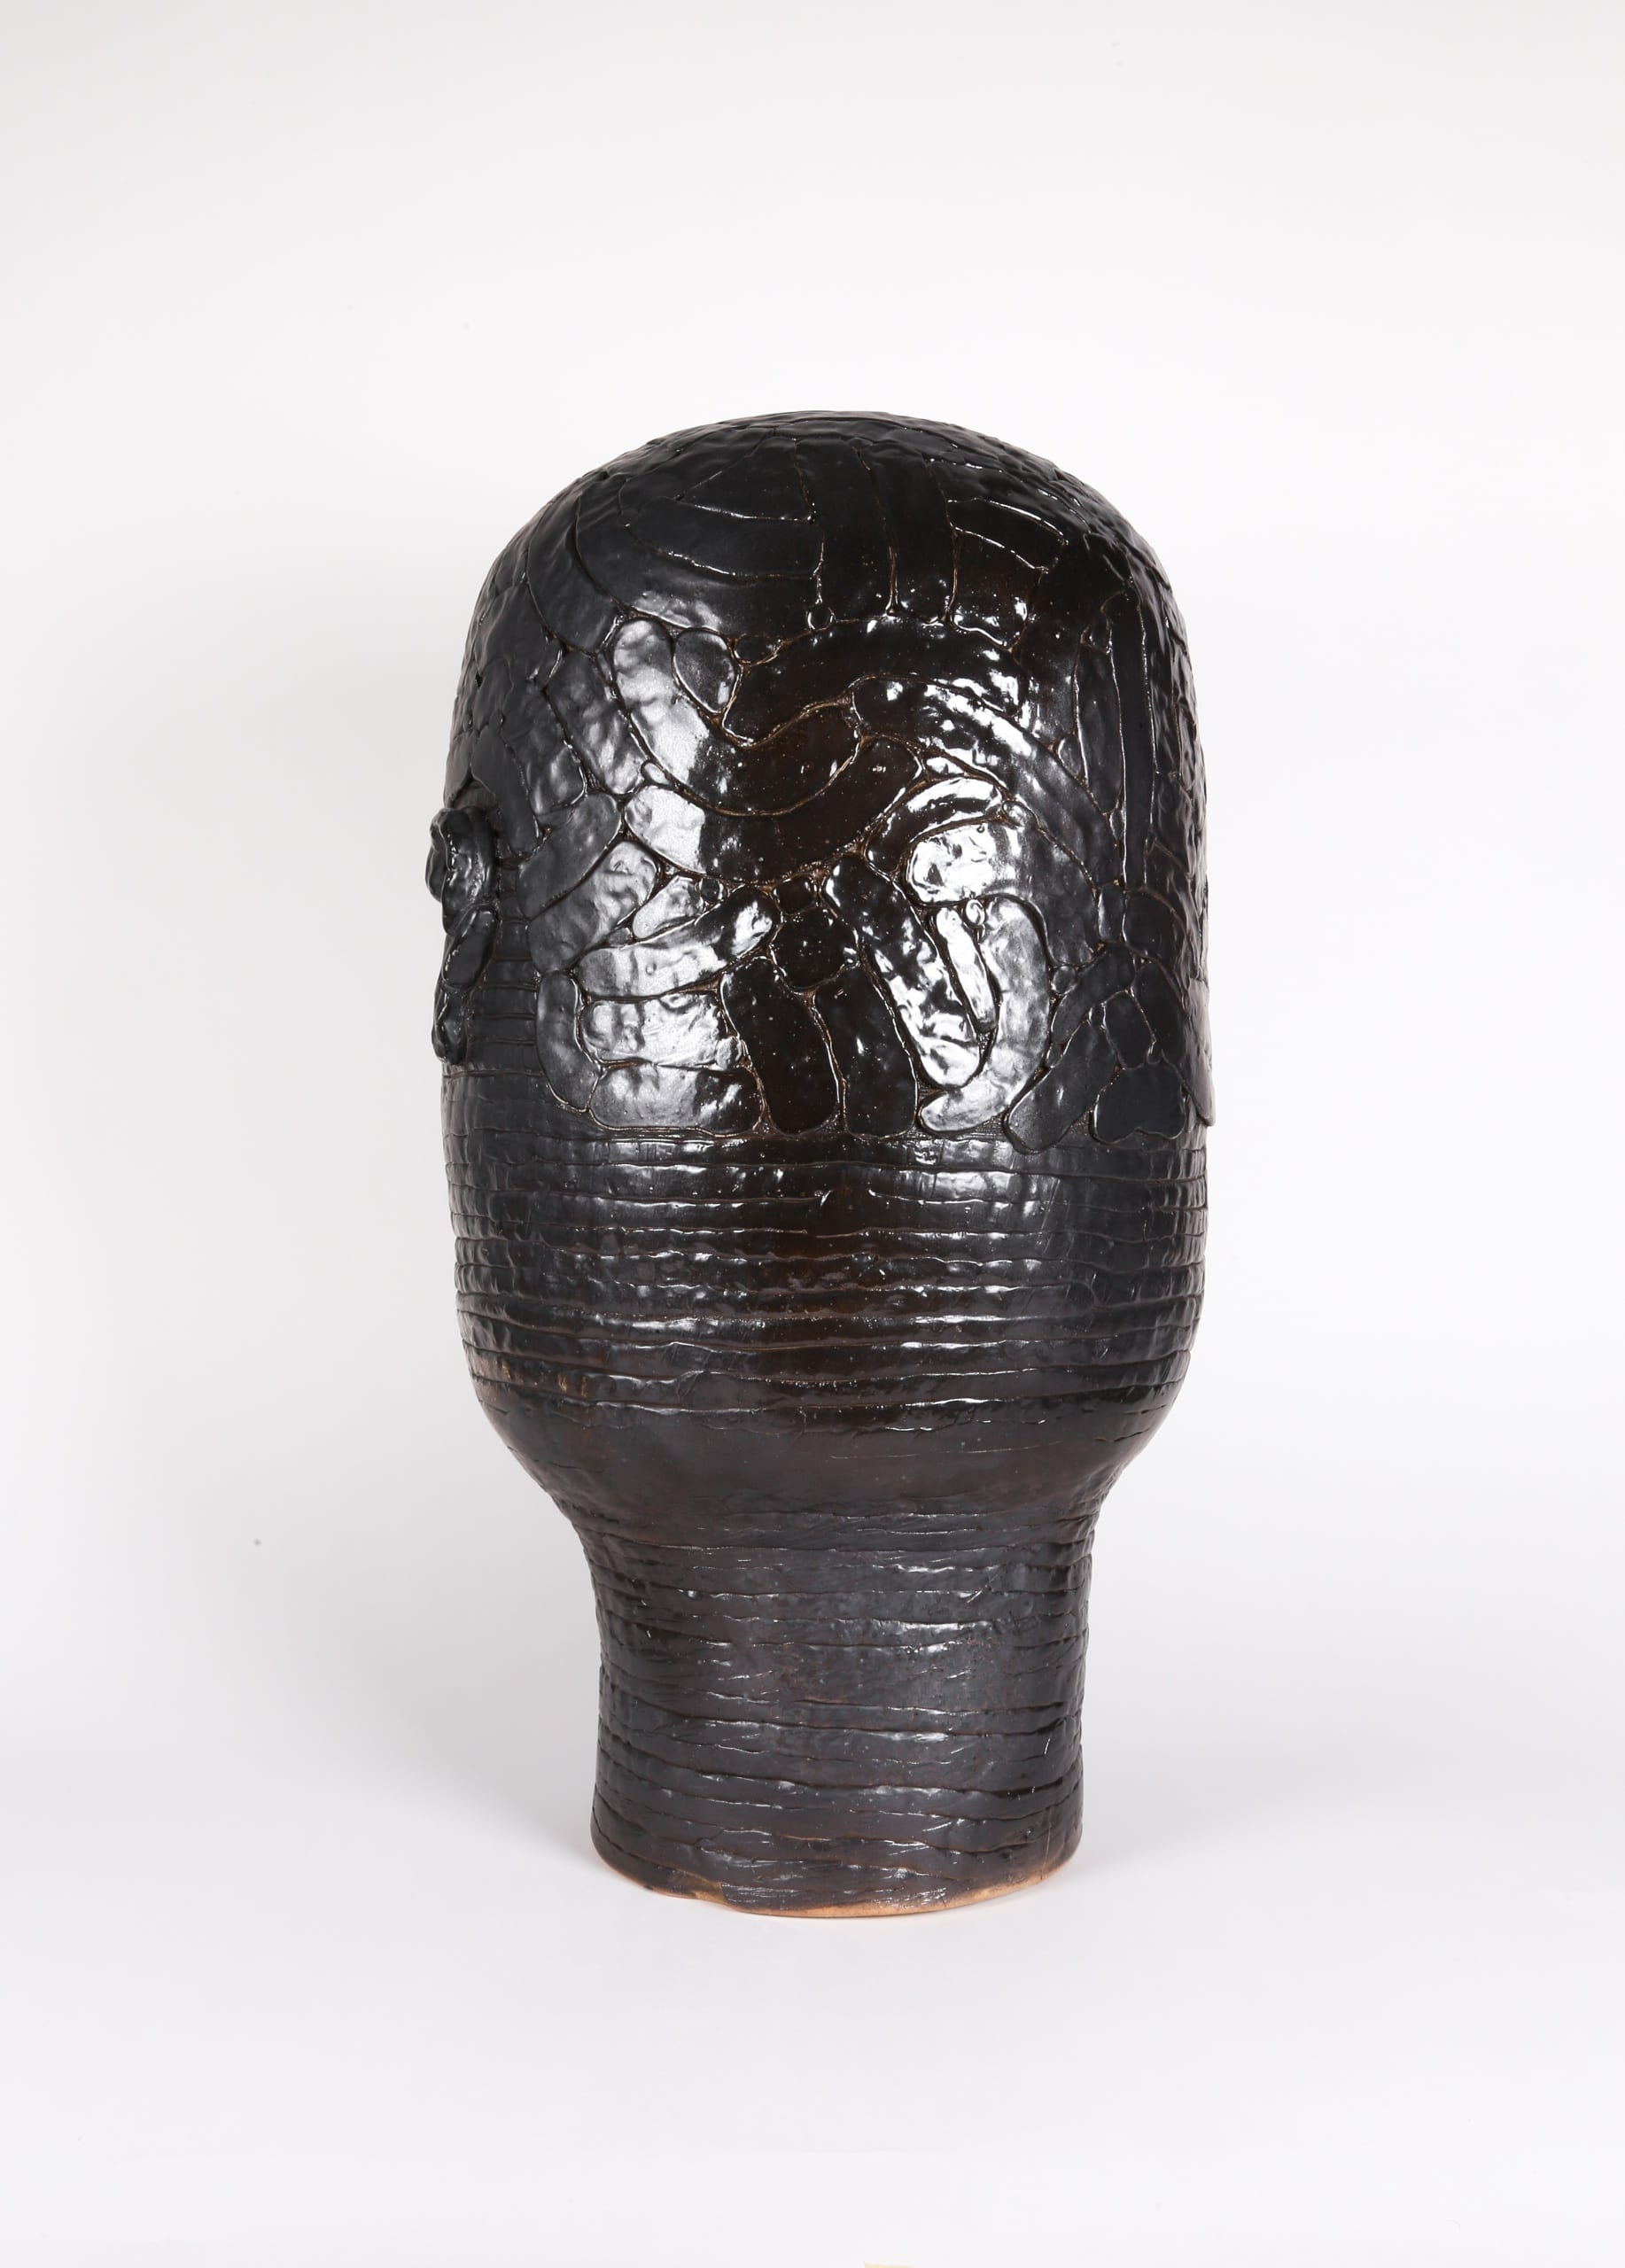 Color photograph with a back view of an abstract ceramic portrait head that appears to be made from a long coil of clay. The outline of hair is affixed to its surface. The object is a monochromatic black with a slight sheen to the glaze.